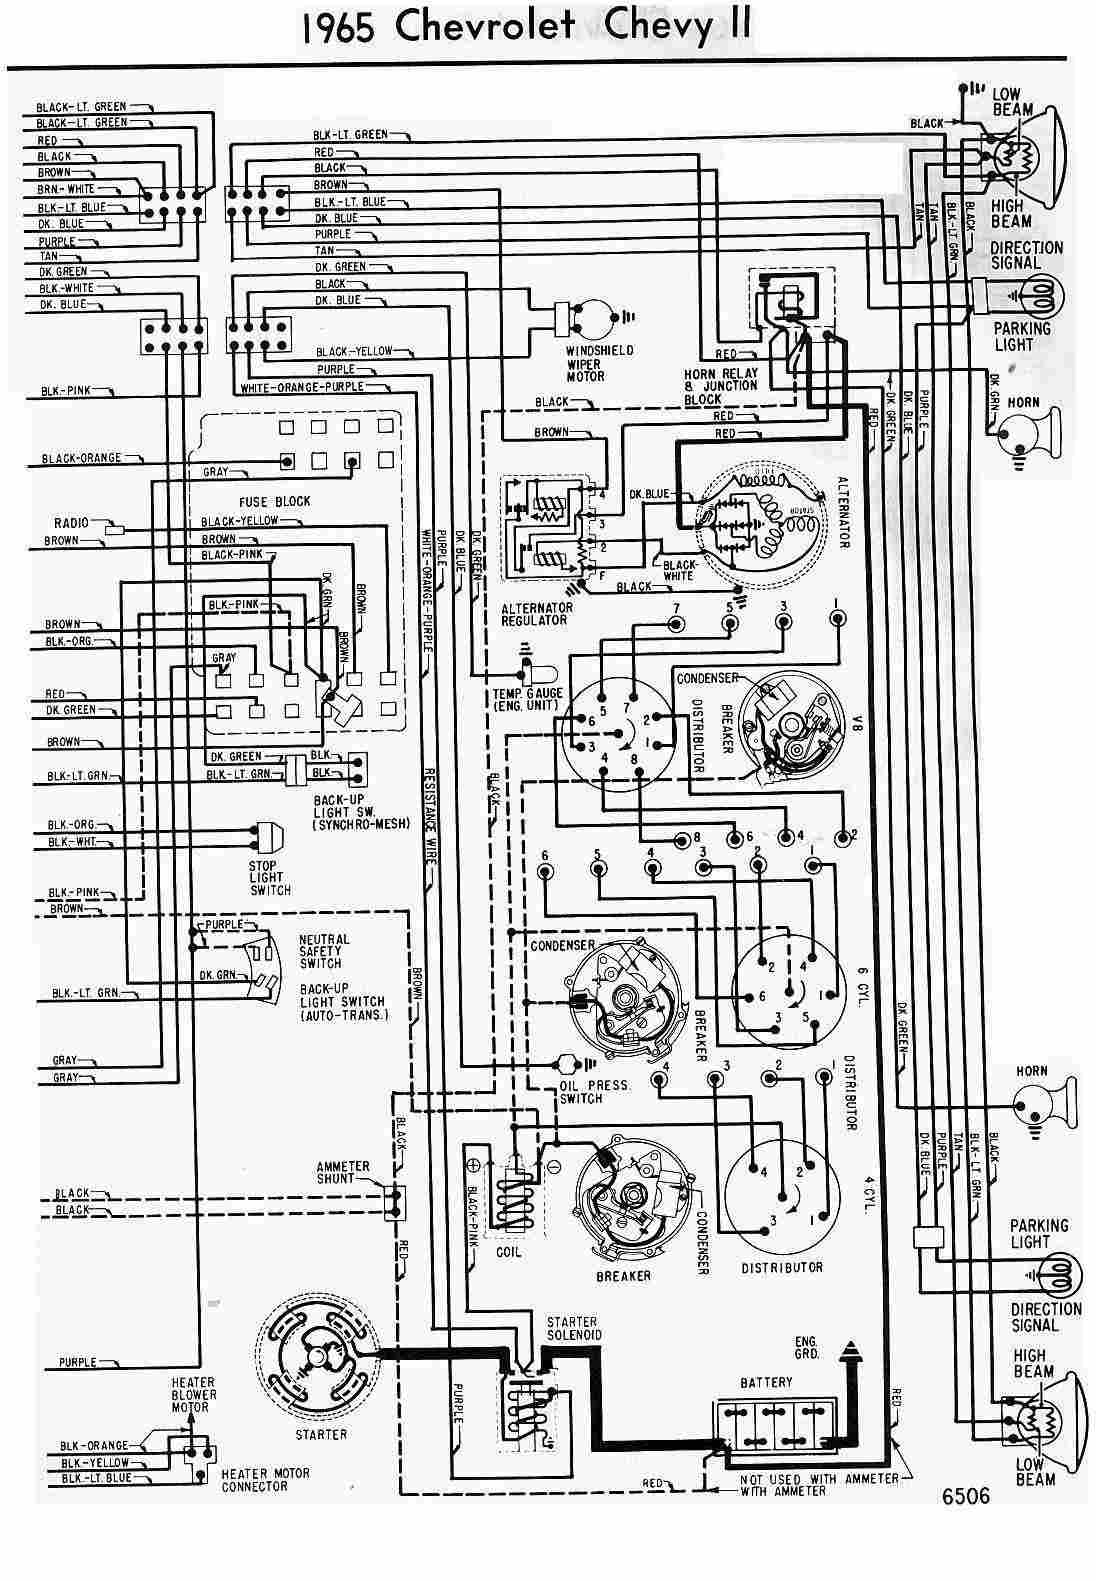 1959 chevrolet wiring diagram impala convertiblejpeg wiring diagrams 2007 chevy impala ignition wiring diagram 1967 chevy impala wiring harness diagram [ 1096 x 1581 Pixel ]